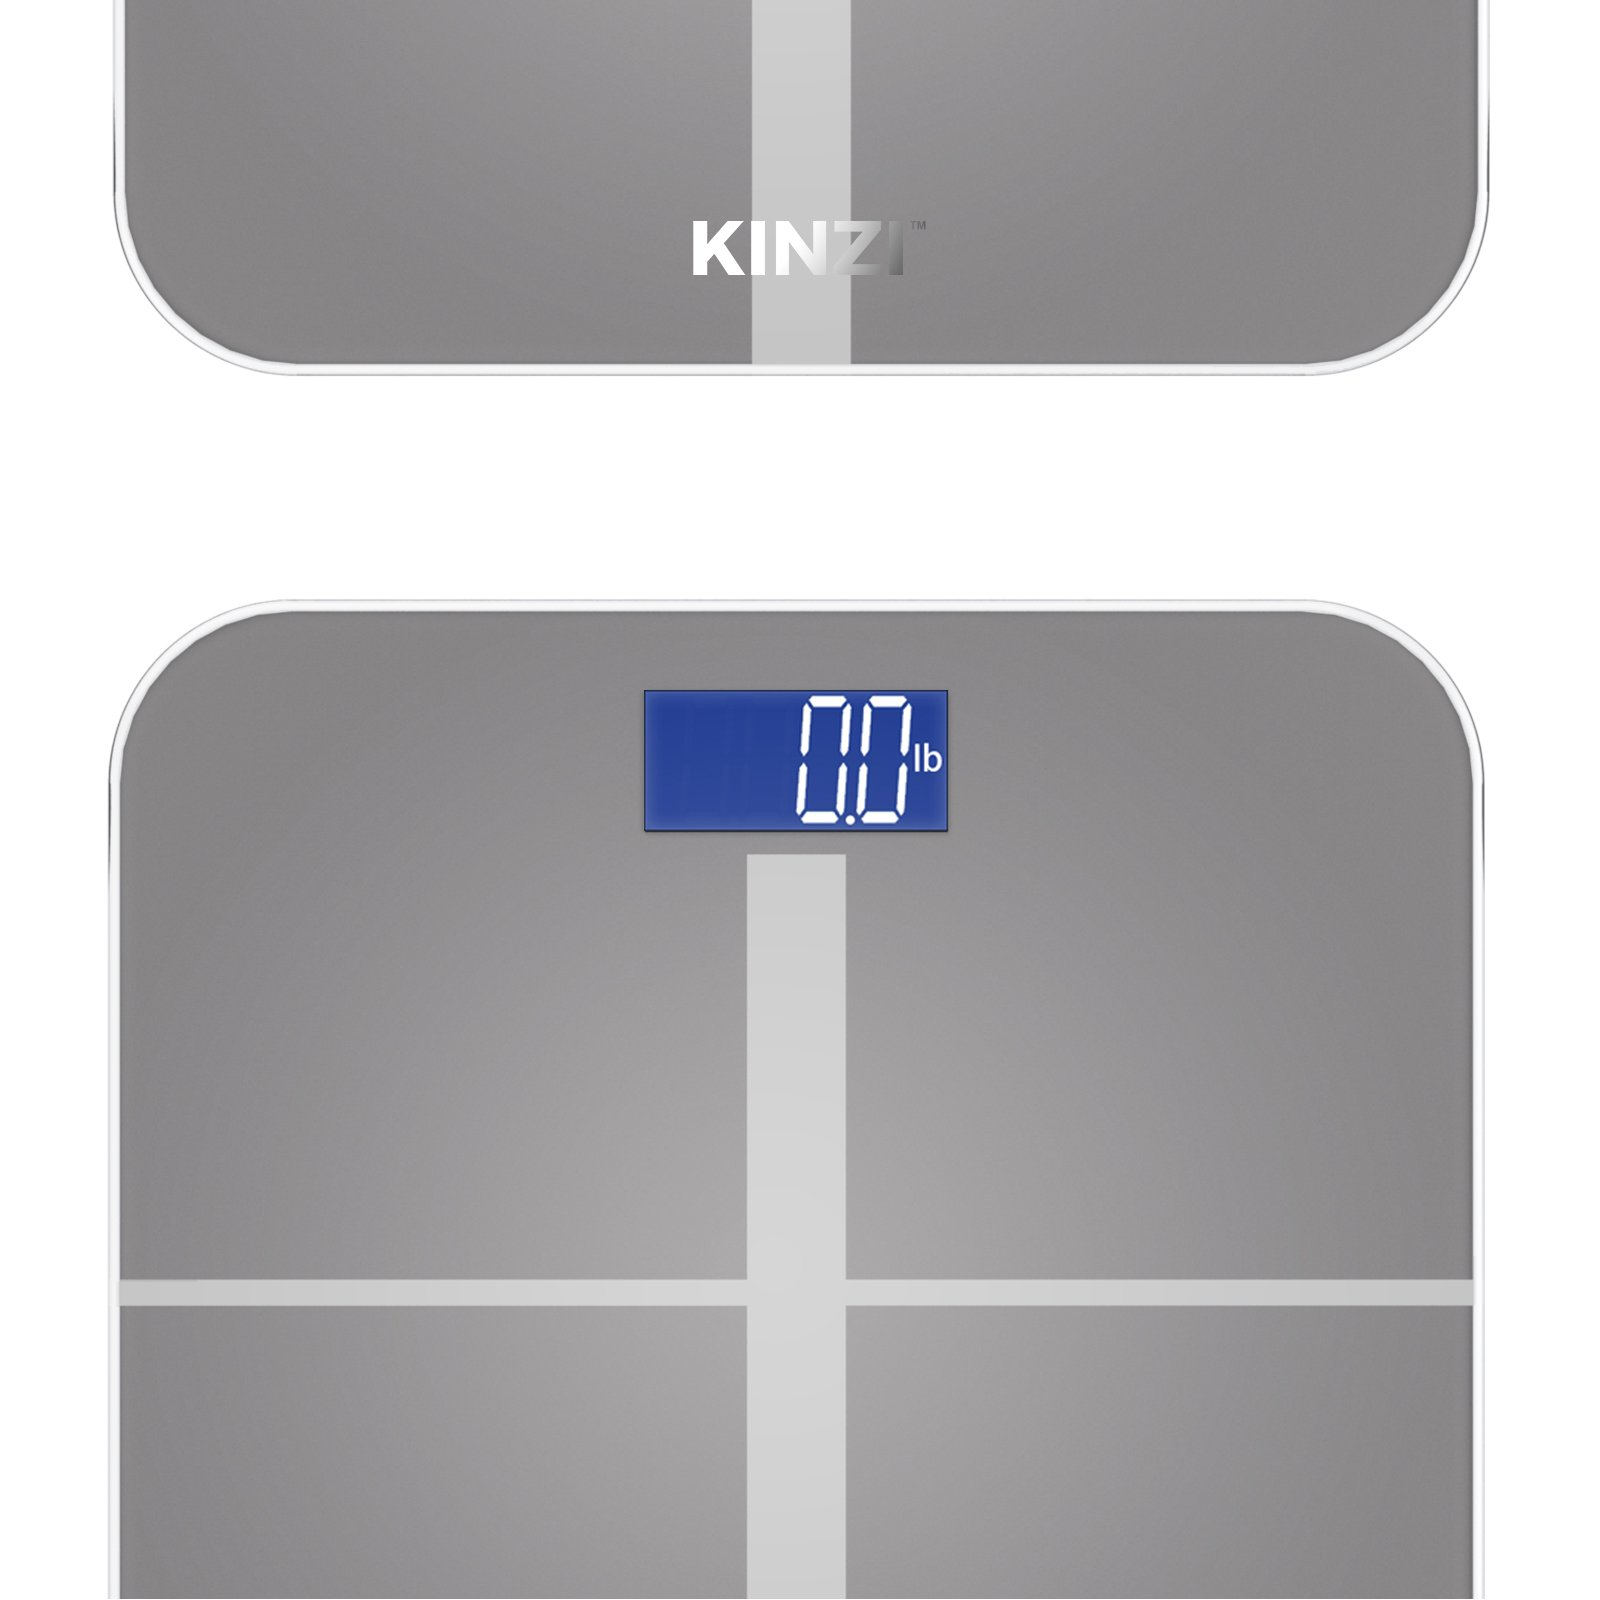 Kinzi Precision Digital Bathroom Scale w/ Extra Large Lighted Display, 400 lb. Capacity and ''Step-On'' Technology by Kinzi (Image #4)